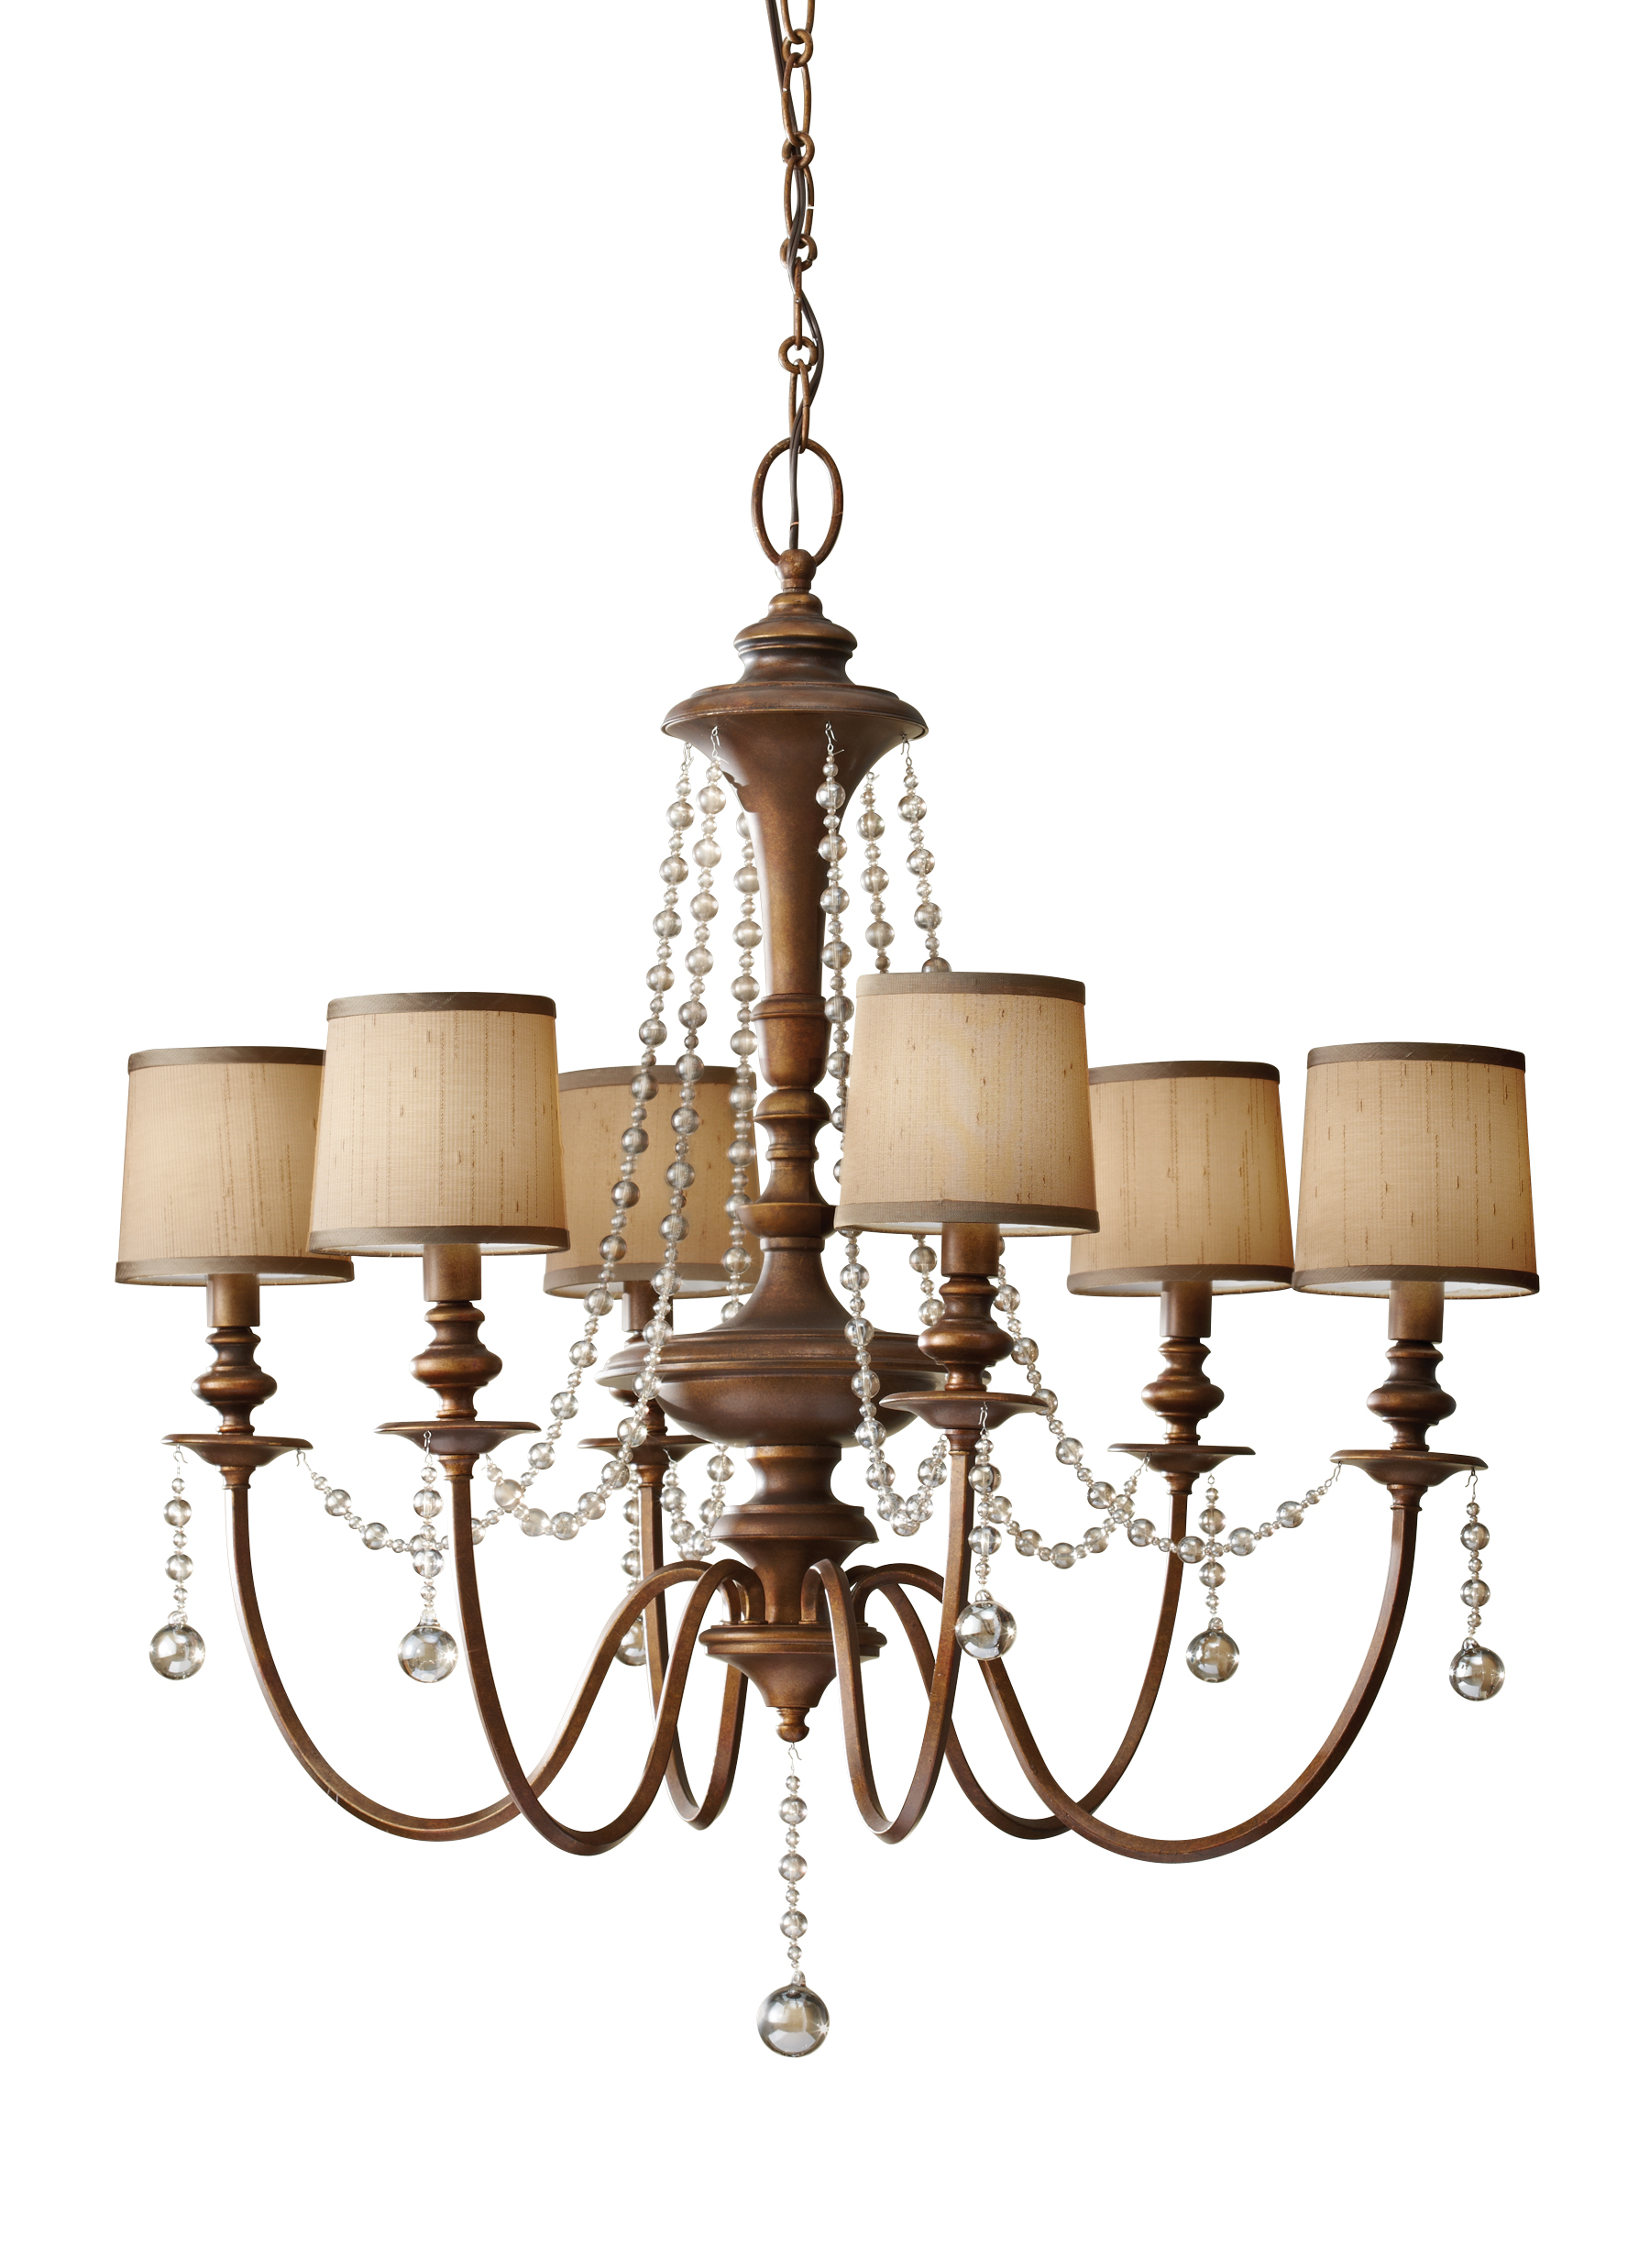 F27226fg6 light chandelier firenze gold loading zoom arubaitofo Image collections